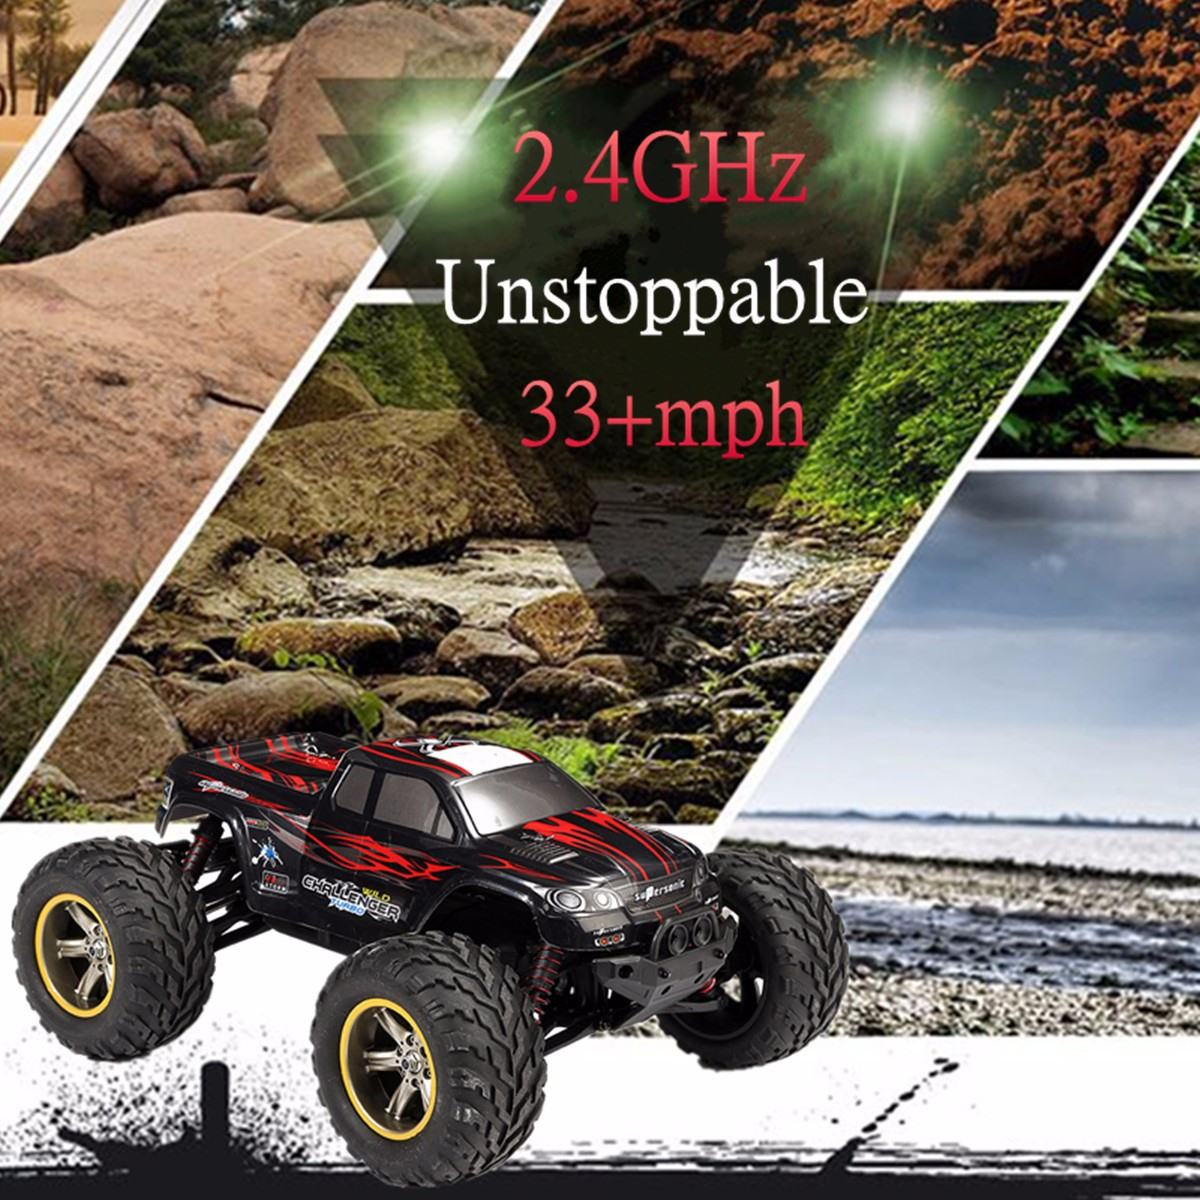 RC Car Impermeable S911 RC SUV Coche 1/12 2.4GHz 2WD 6CH Alta Velocidad Control Remoto Cimbing Car For Boys Kids TransmitterRC Car Impermeable S911 RC SUV Coche 1/12 2.4GHz 2WD 6CH Alta Velocidad Control Remoto Cimbing Car For Boys Kids Transmitter